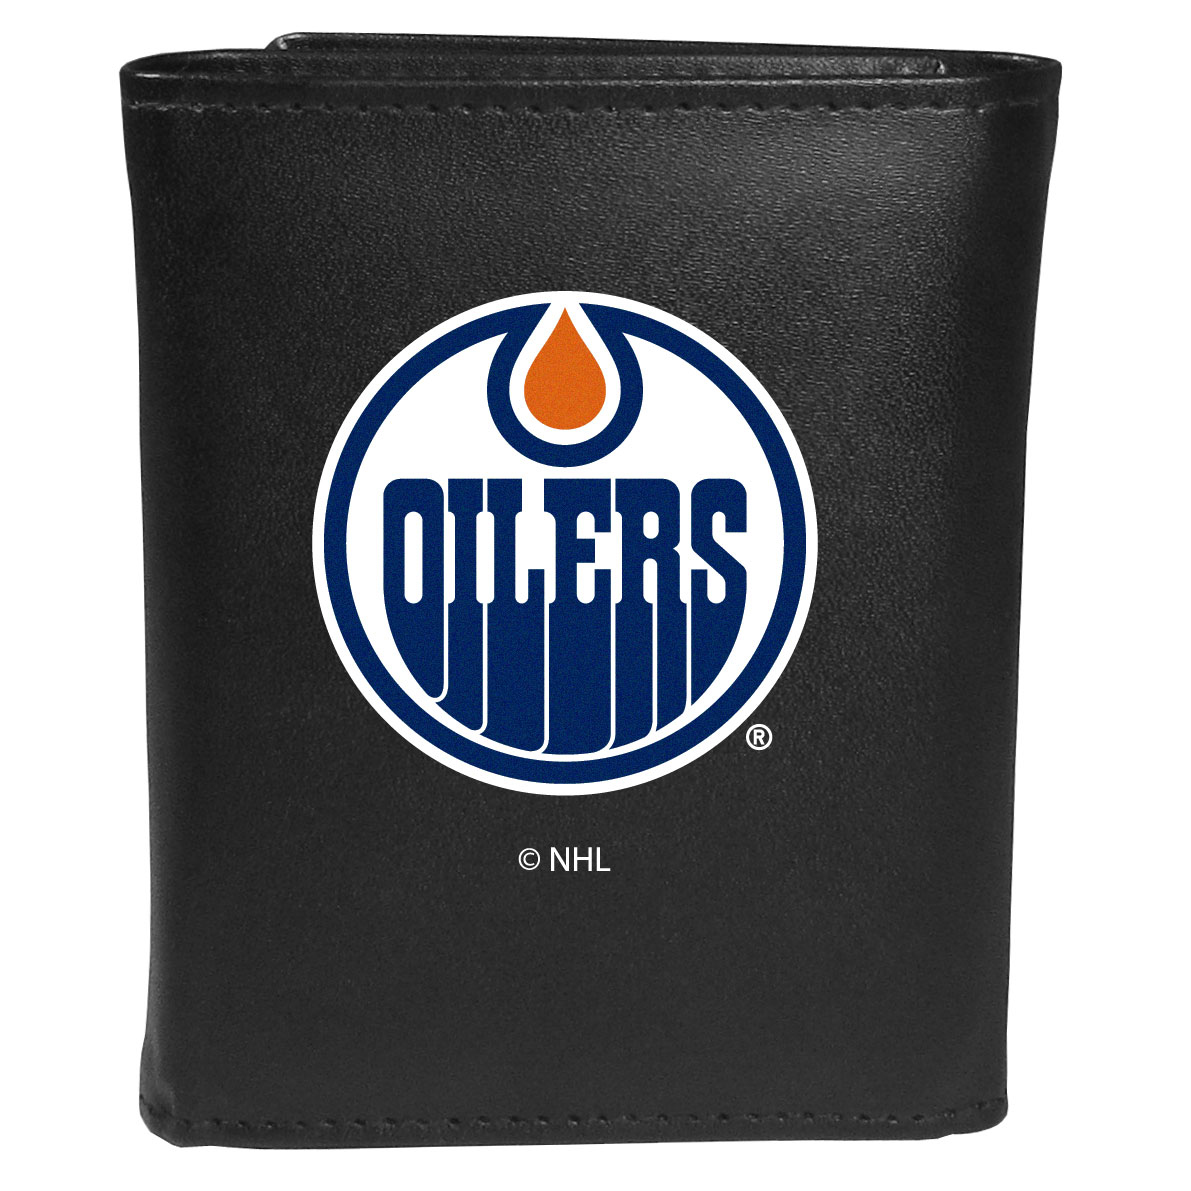 Edmonton Oilers® Leather Tri-fold Wallet, Large Logo - Our classic fine leather tri-fold wallet is meticulously crafted with genuine leather that will age beautifully so you will have a quality wallet for years to come. This is fan apparel at its finest. The wallet is packed with organizational  features; lots of credit card slots, large billfold pocket, and a window ID slot. The front of the wallet features an extra large Edmonton Oilers® printed logo.